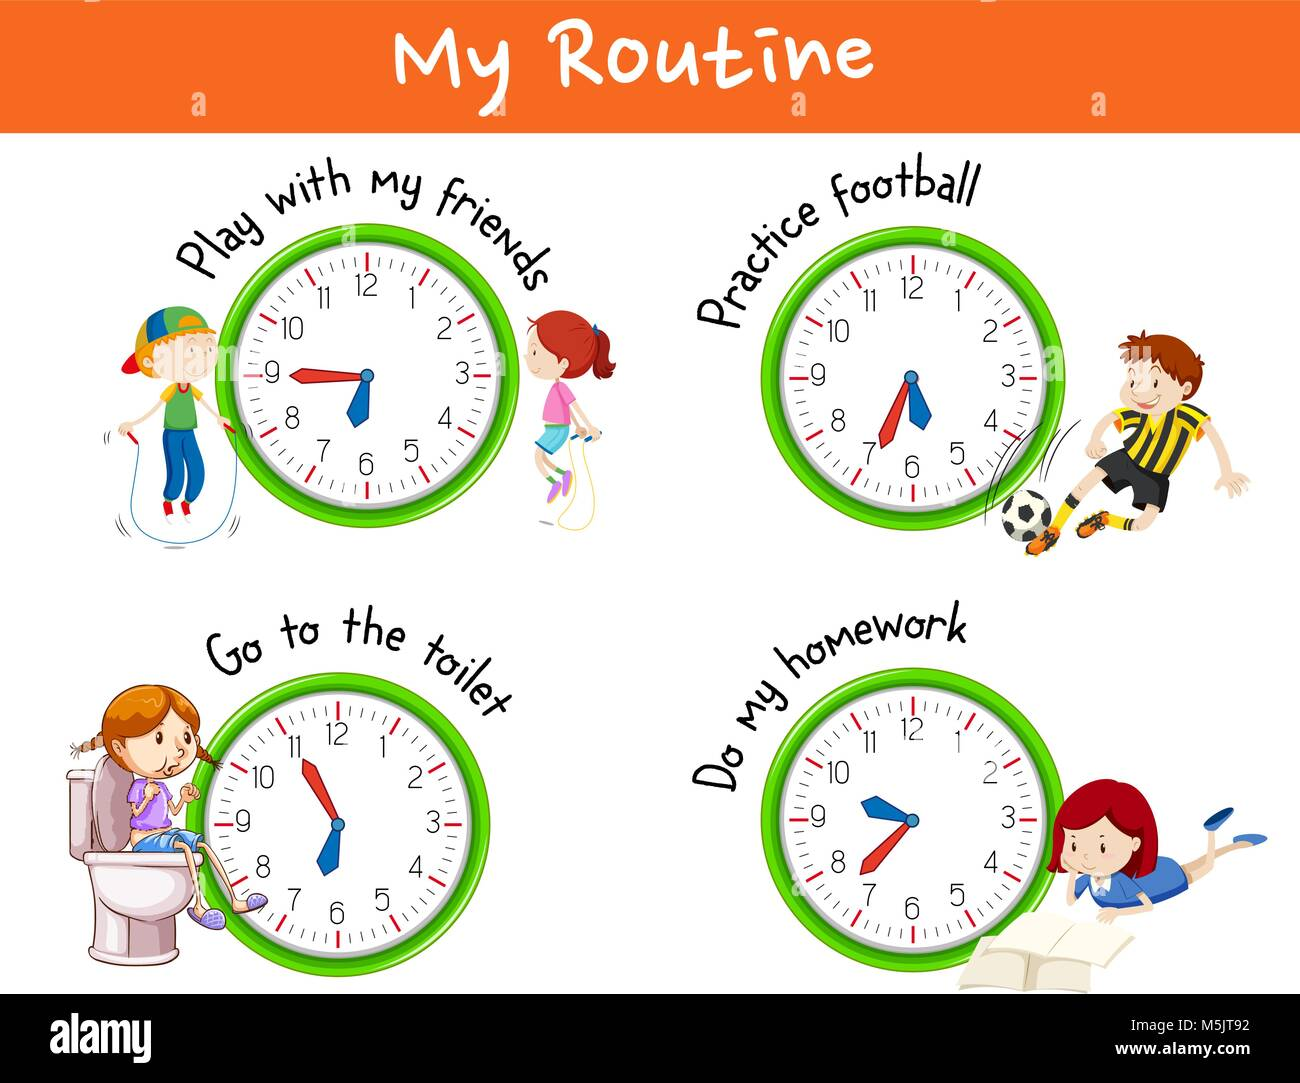 Different routines for children illustration - Stock Vector